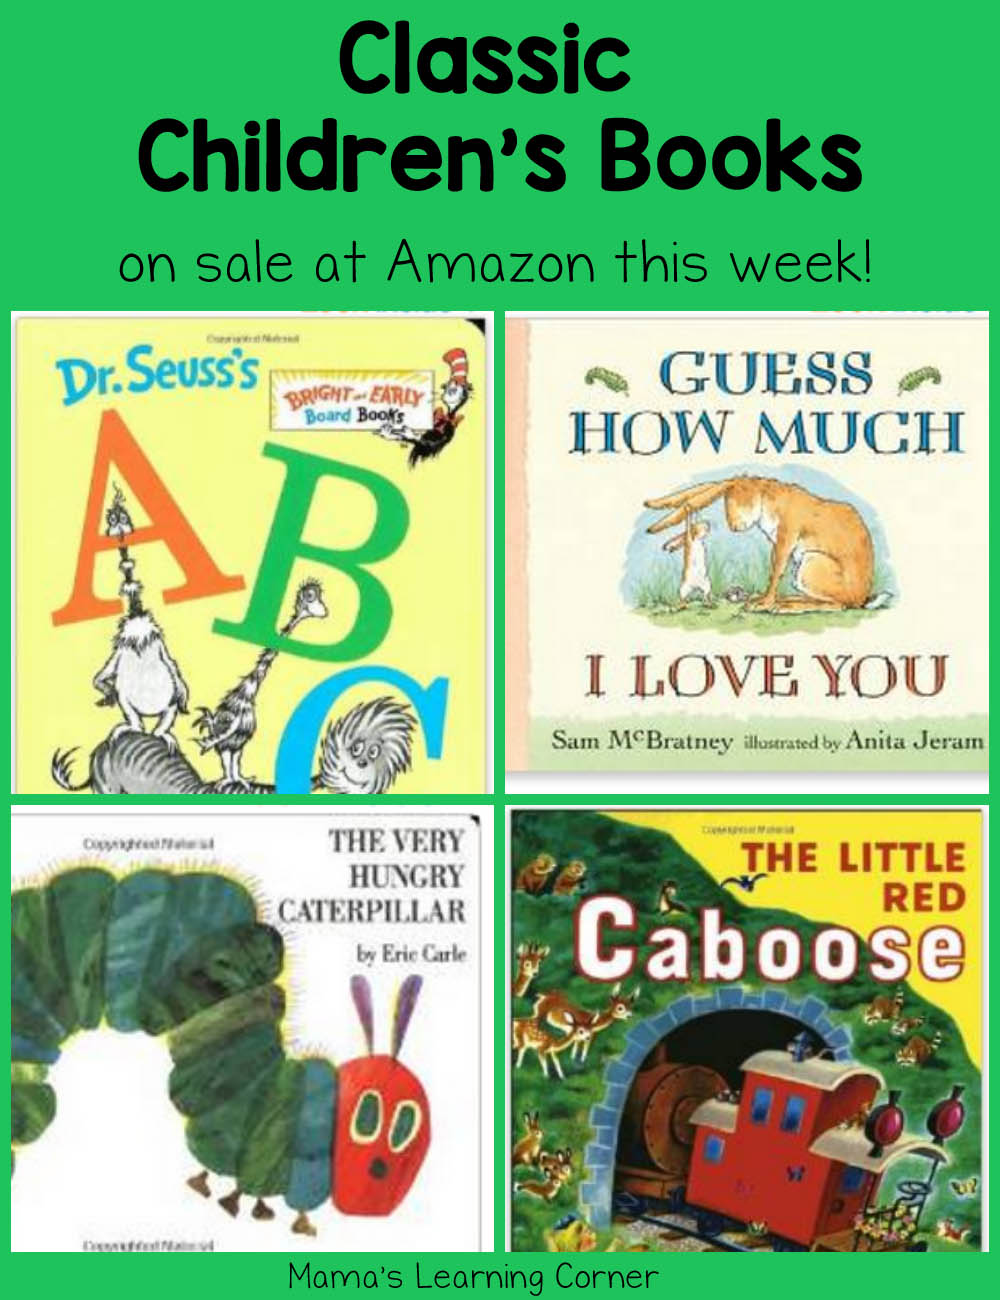 Classic Childrens Books on Sale at Amazon